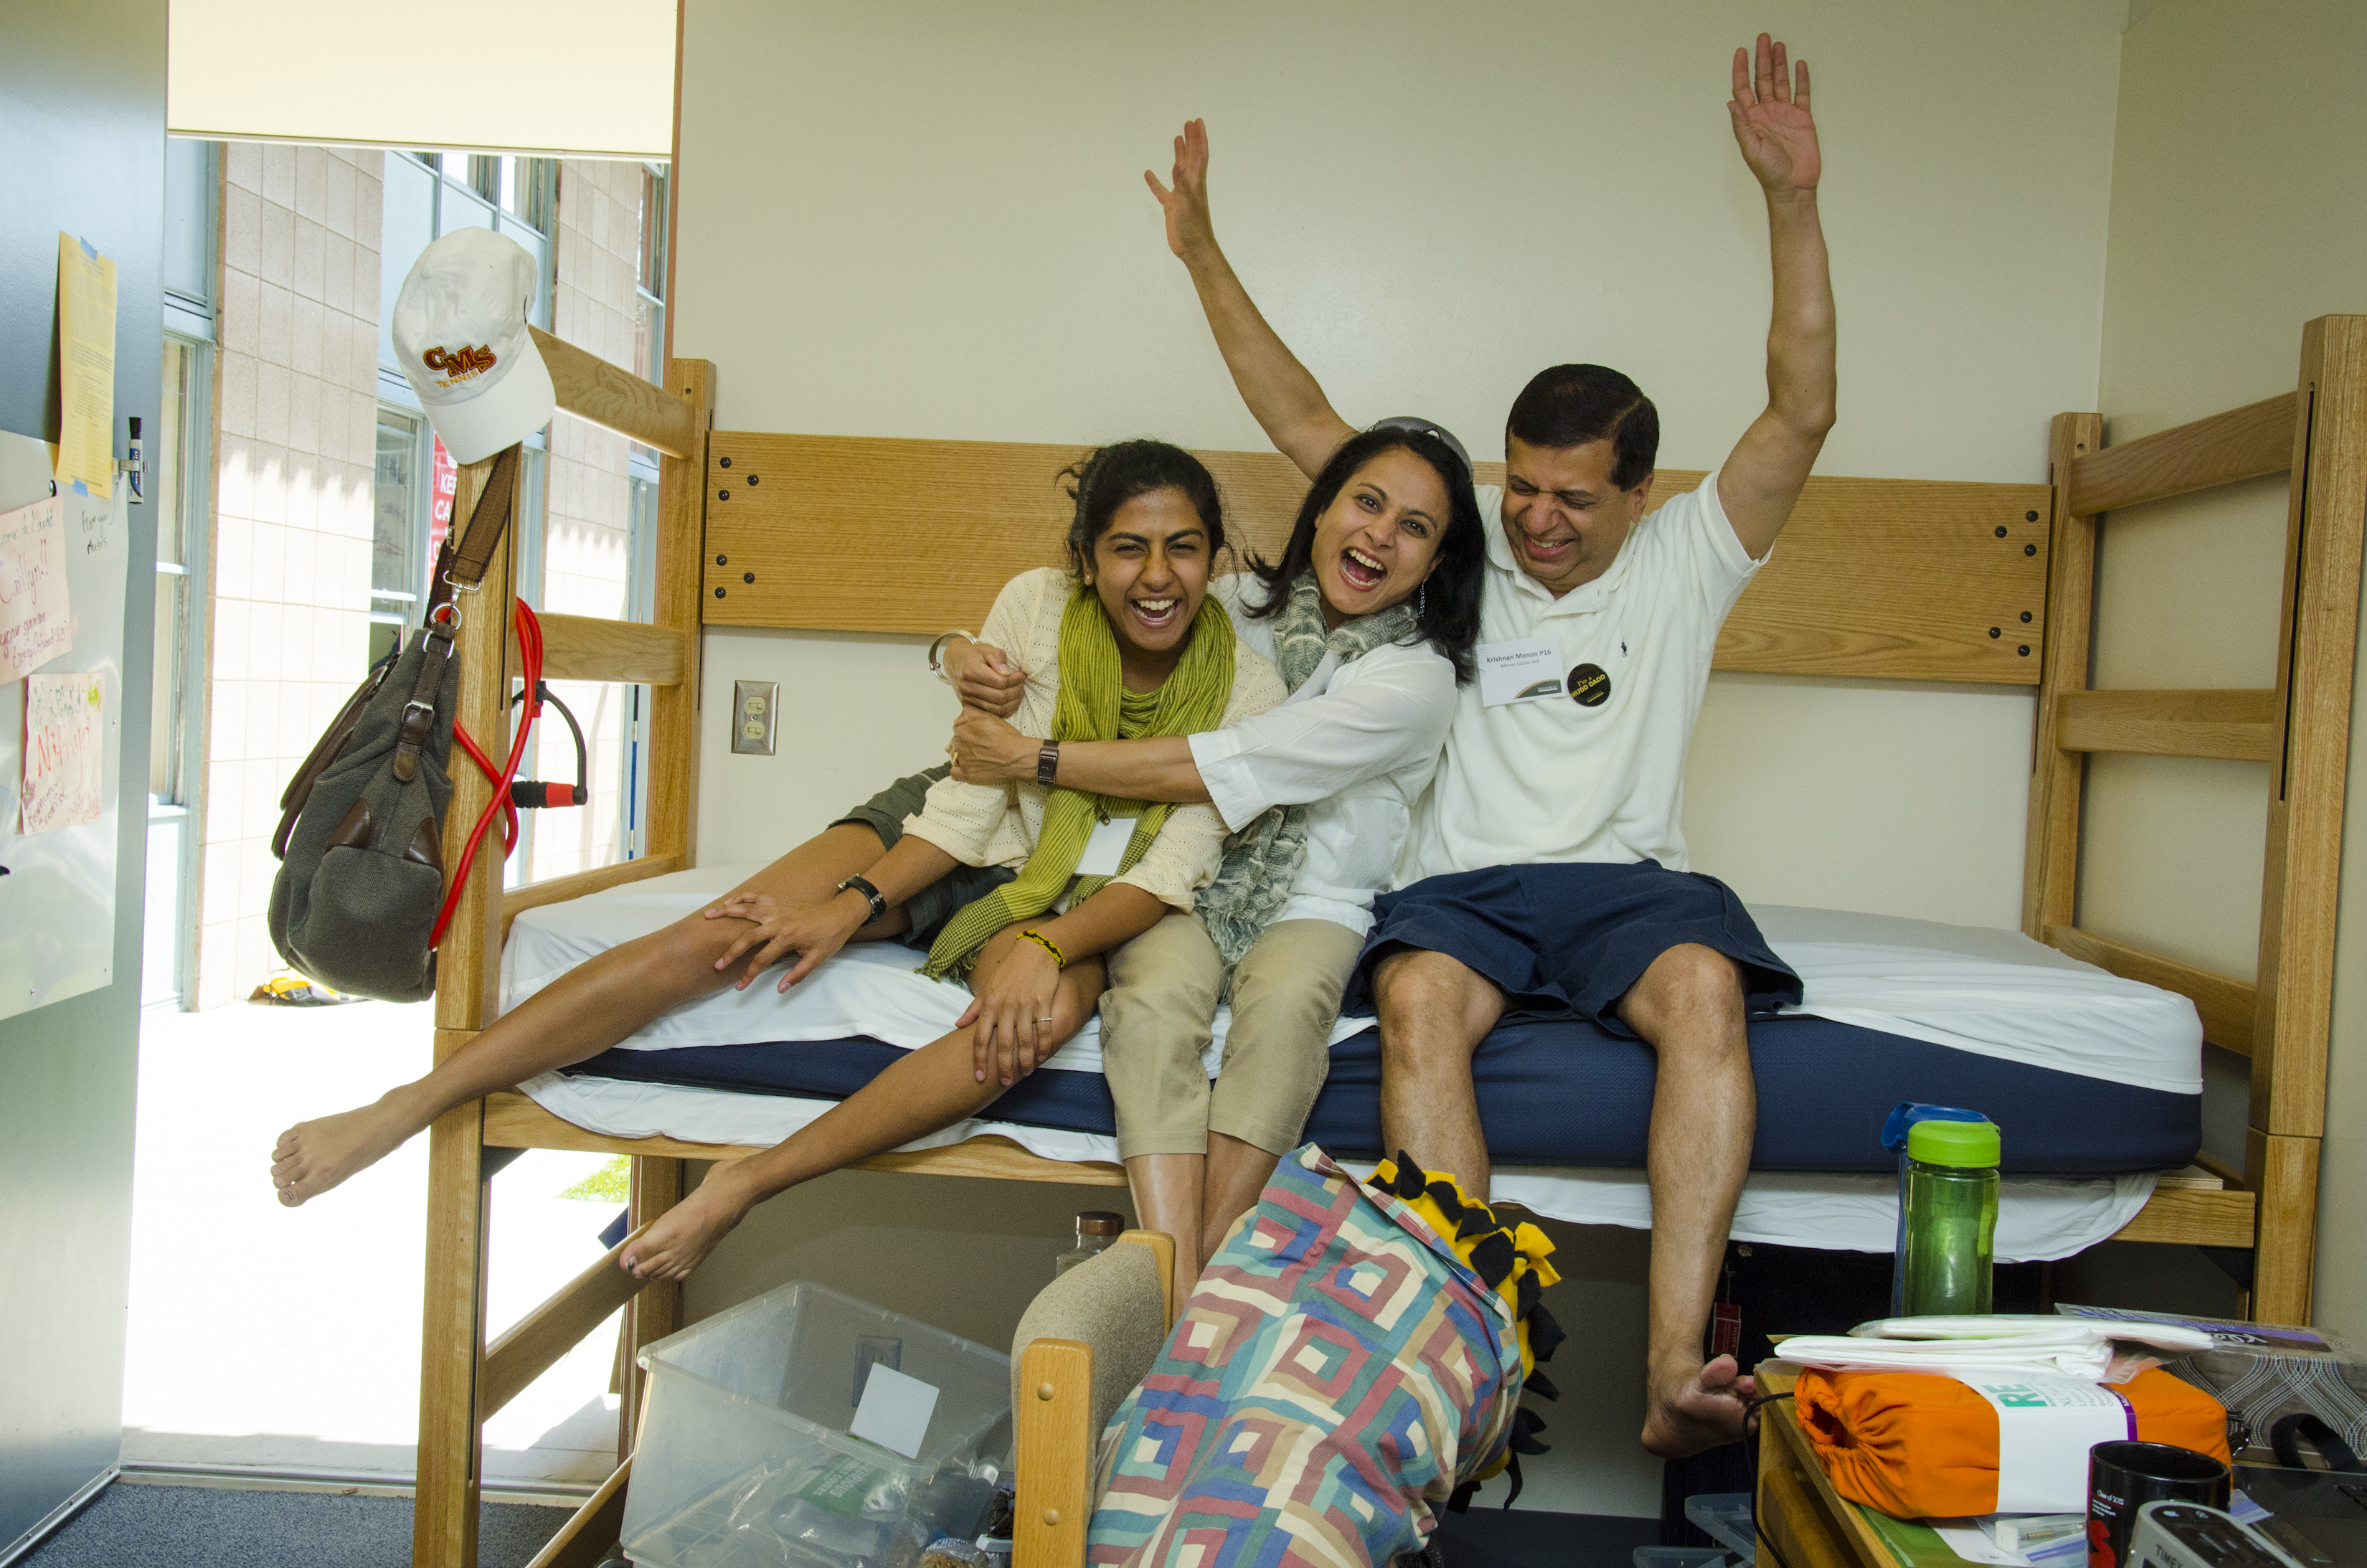 Parents and their student laugh on dorm bed.